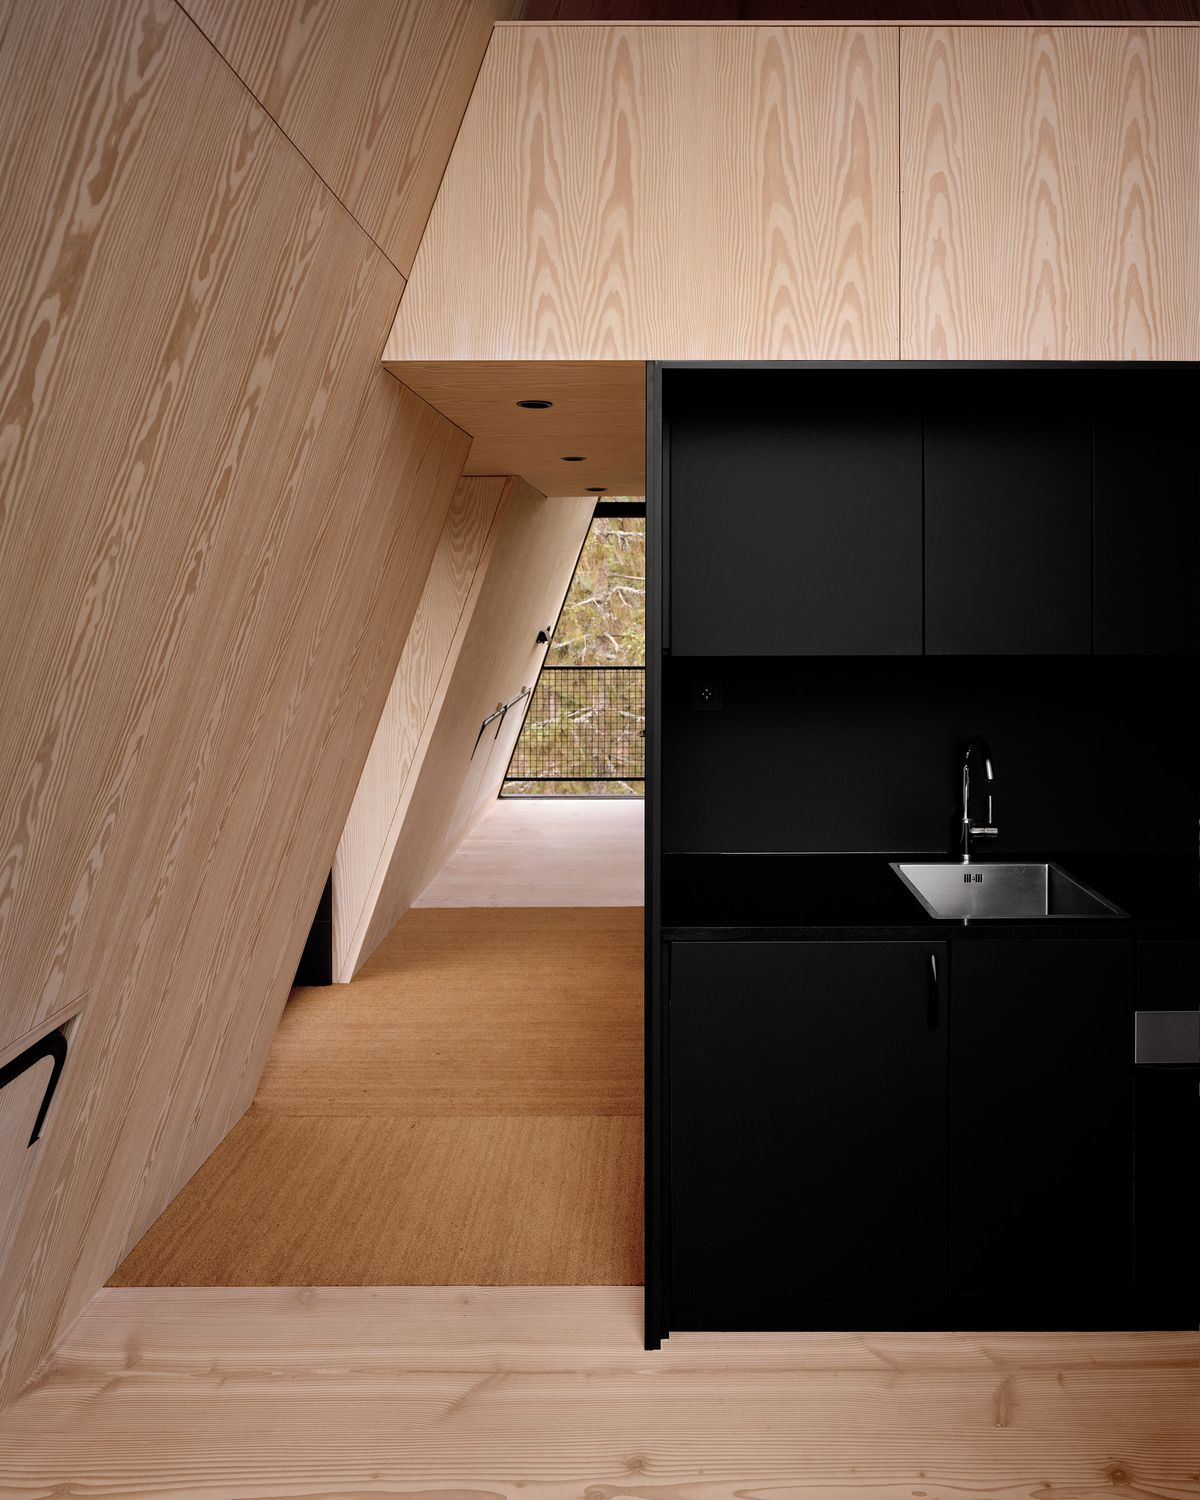 Small kitchen with sink and black cabinets